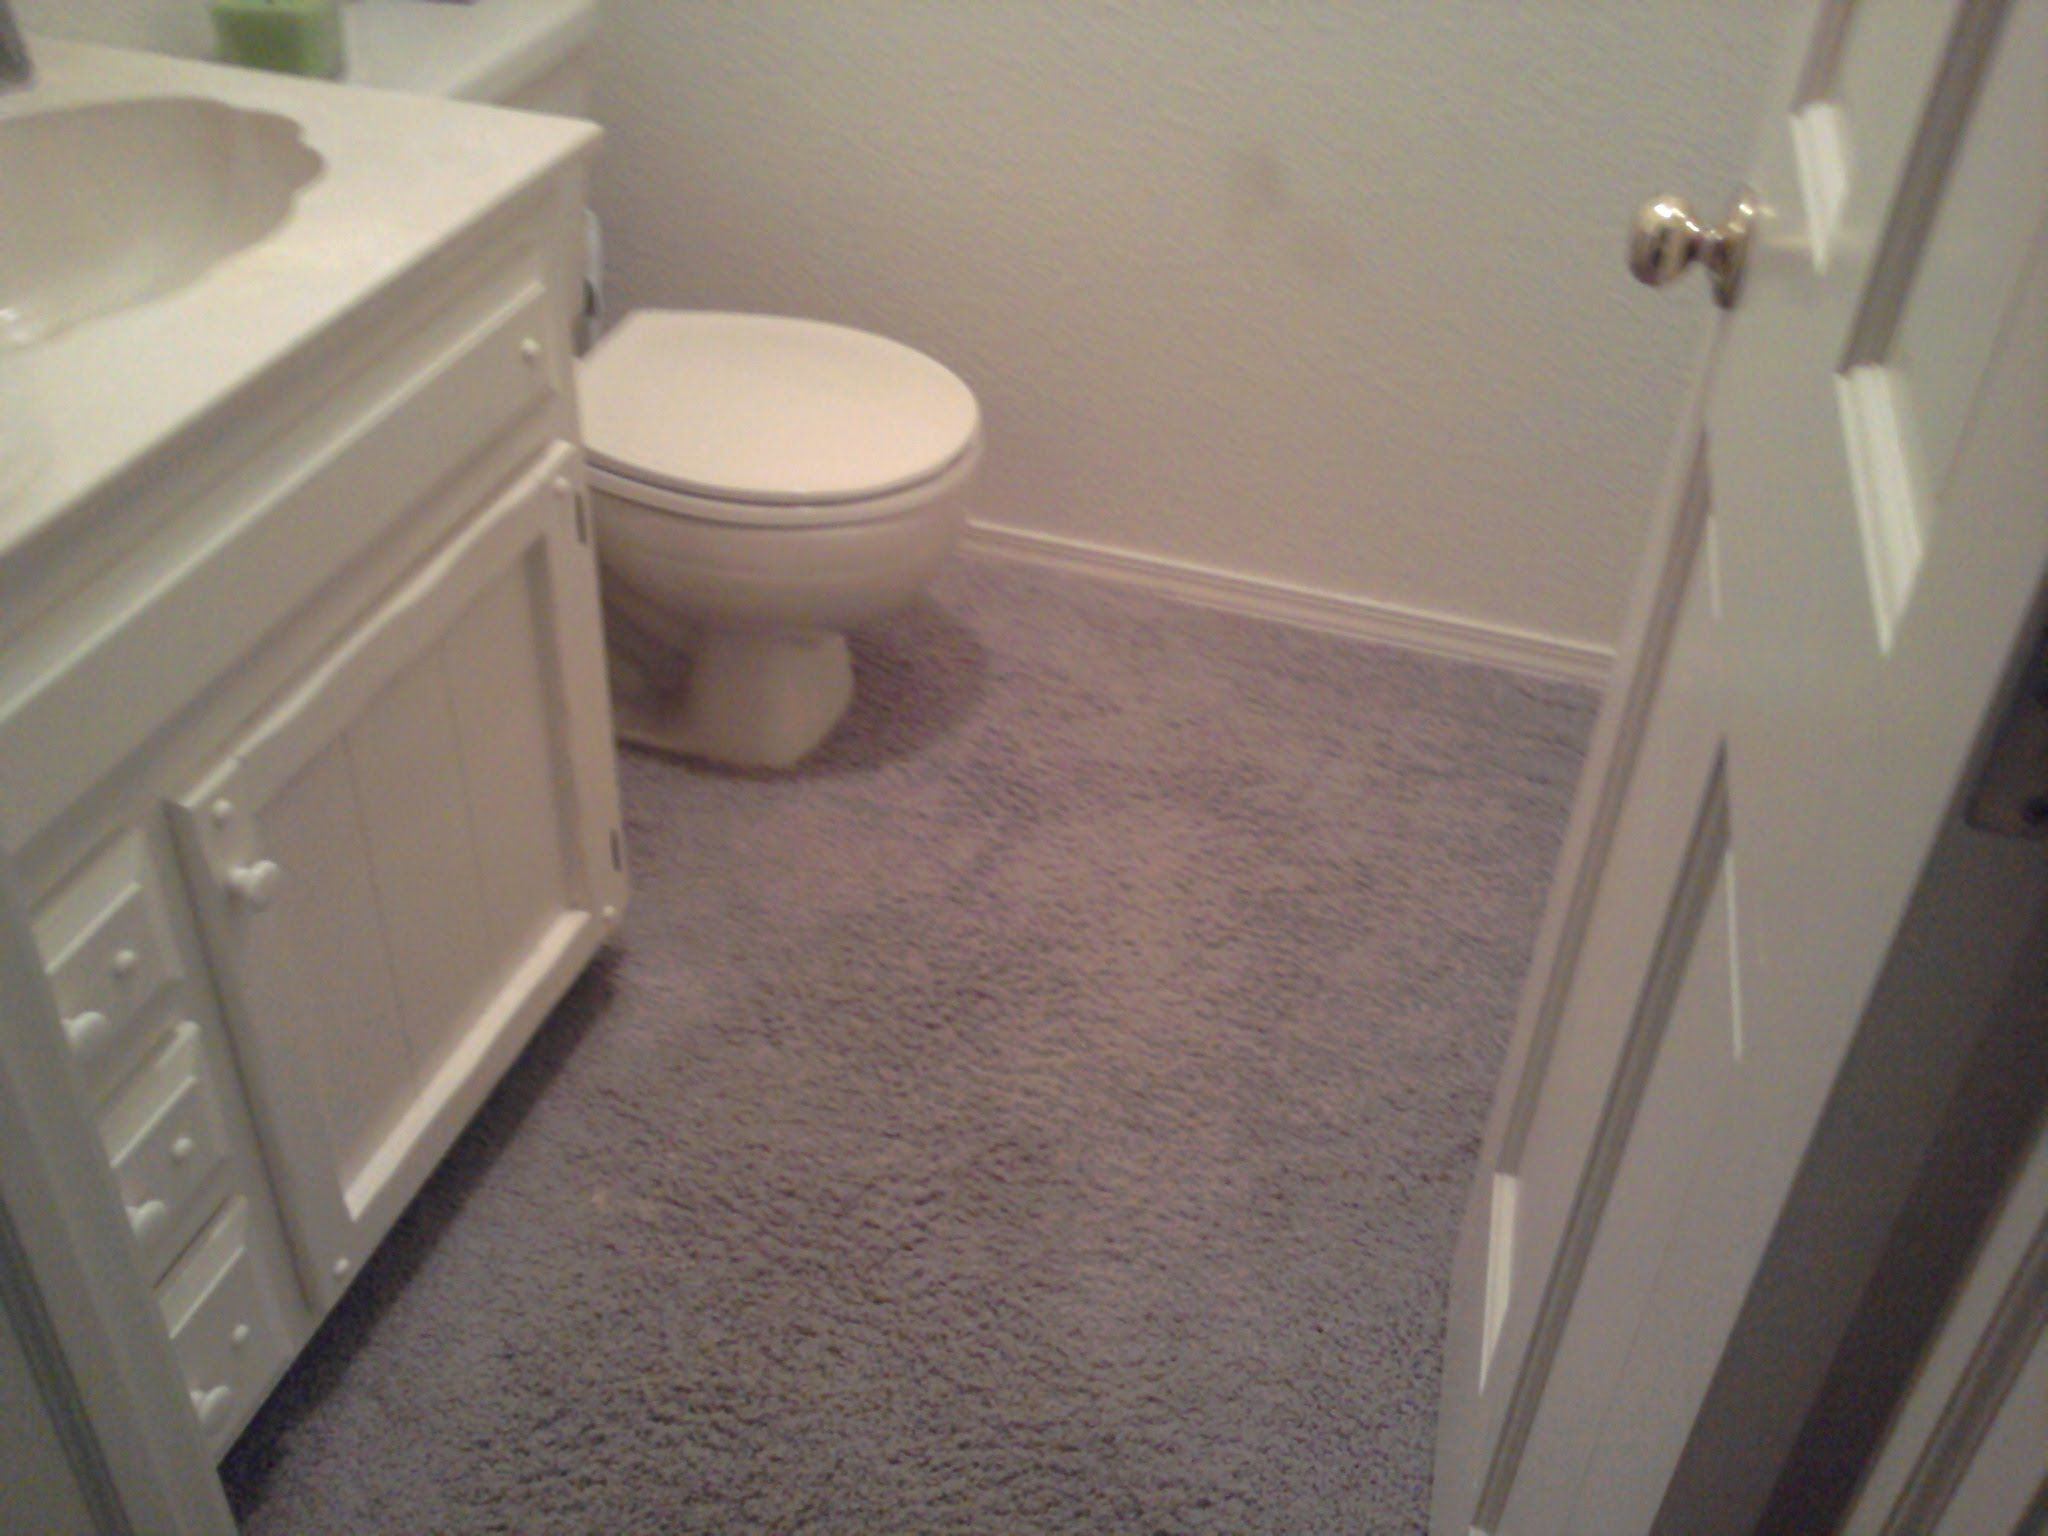 How To Add A Comforting Touch To Your Home With A Bathroom Carpet Goodworksfurniture In 2020 Bathroom Carpet Bathroom Rugs Cleaning Upholstery